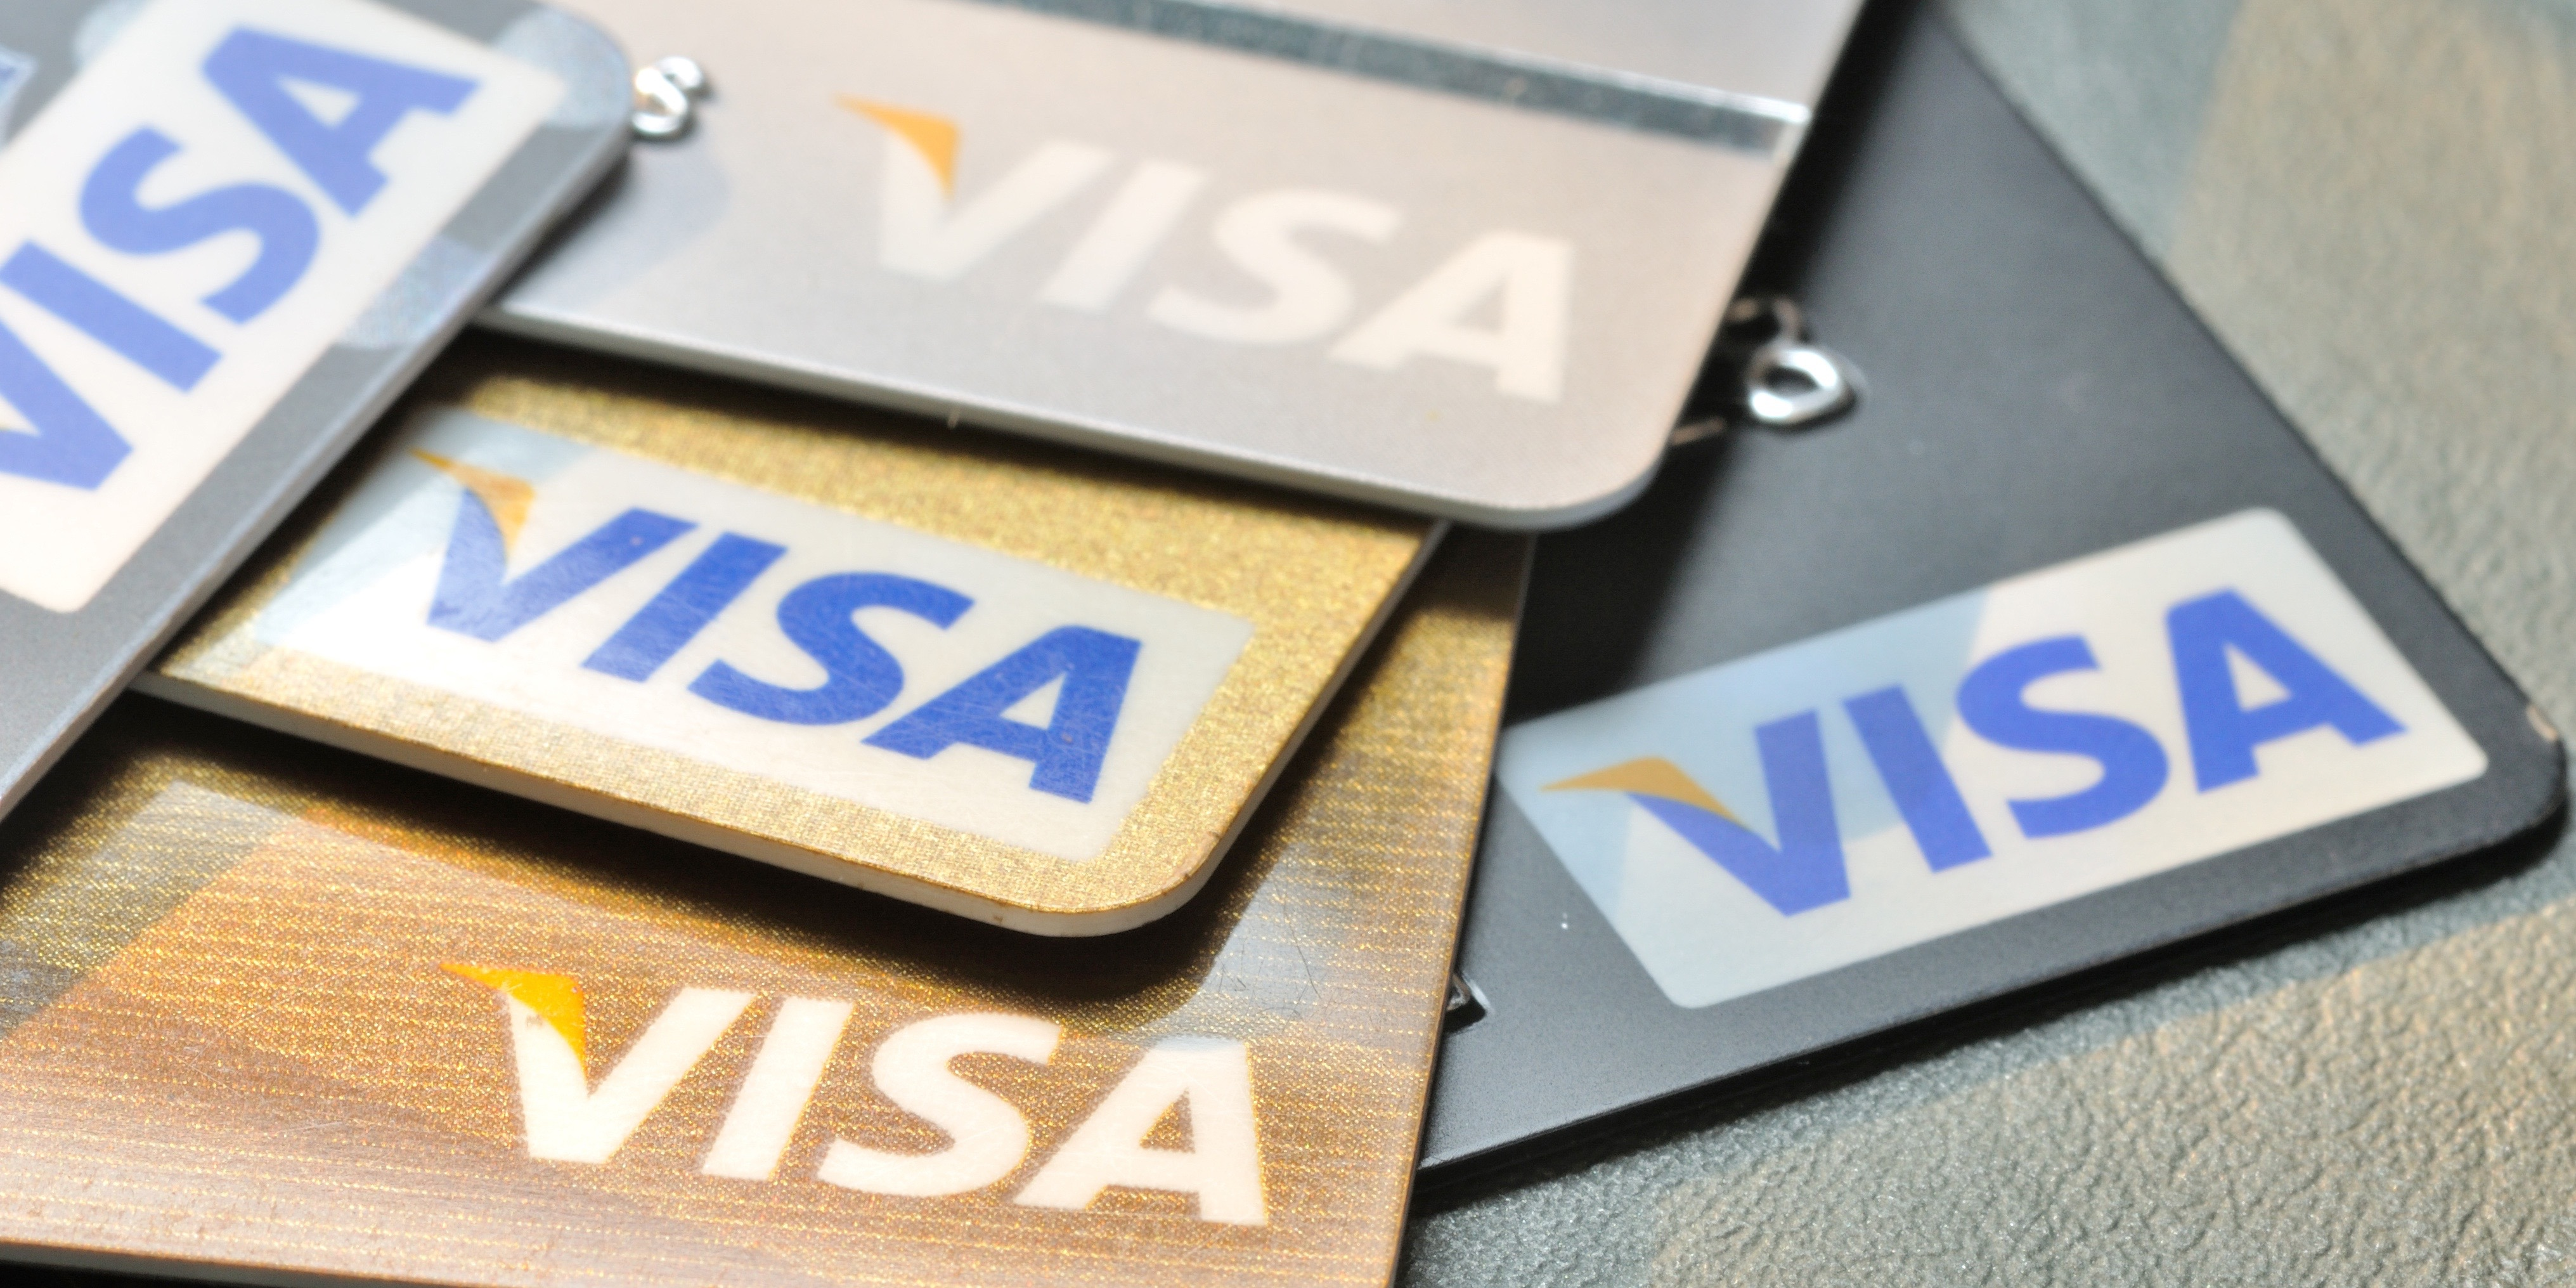 visa-business-credit-cards